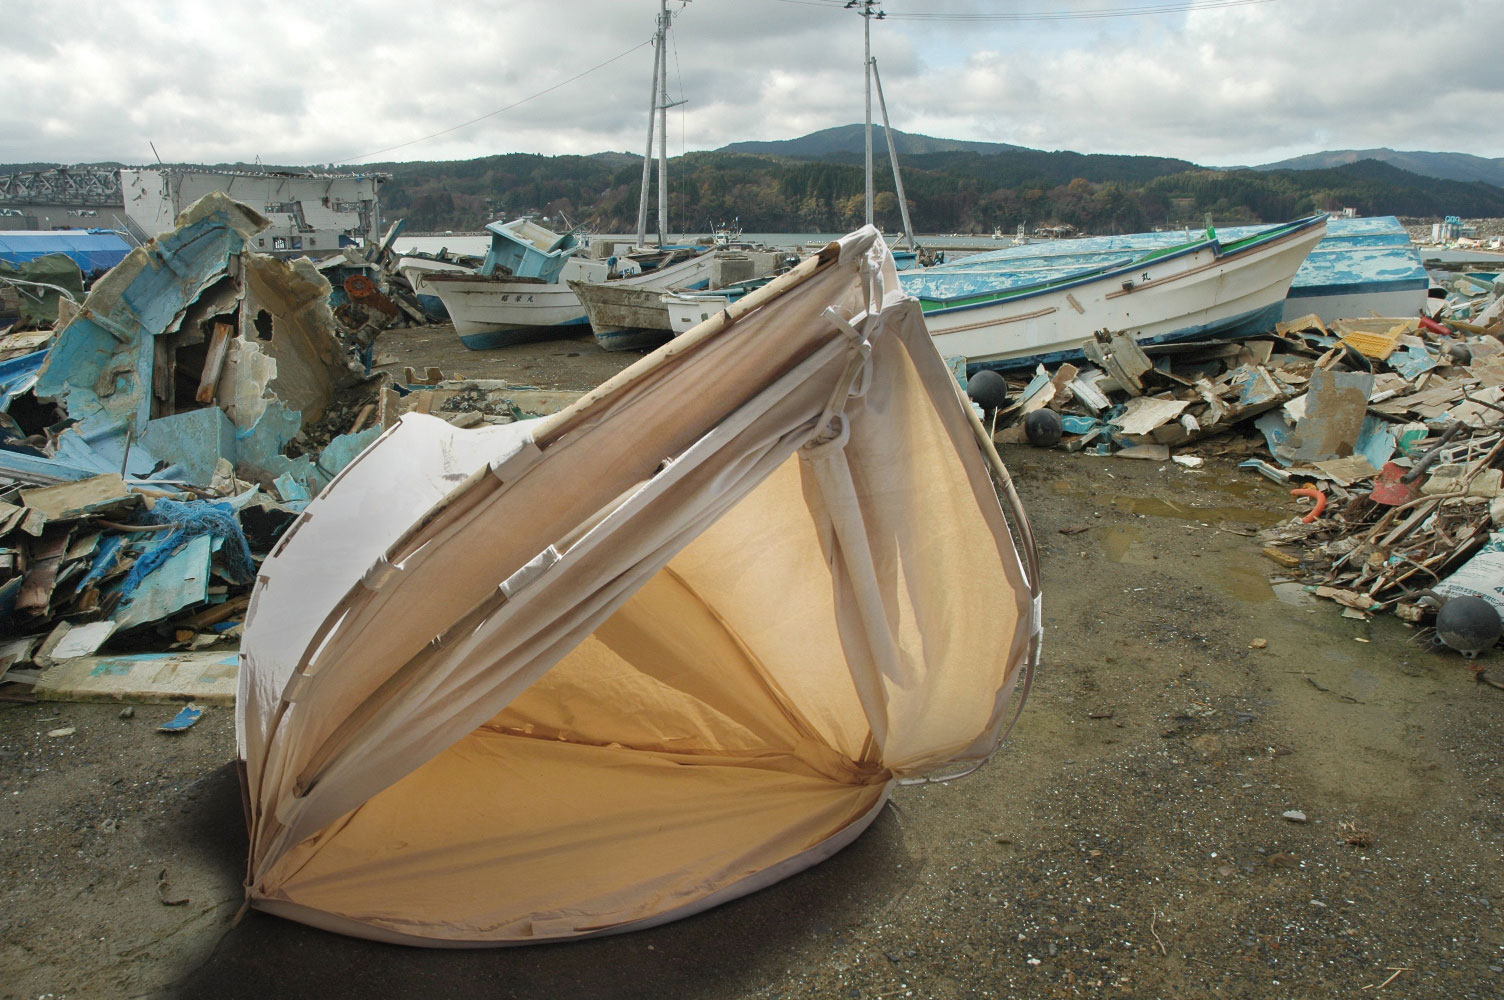 portable shelter and boats